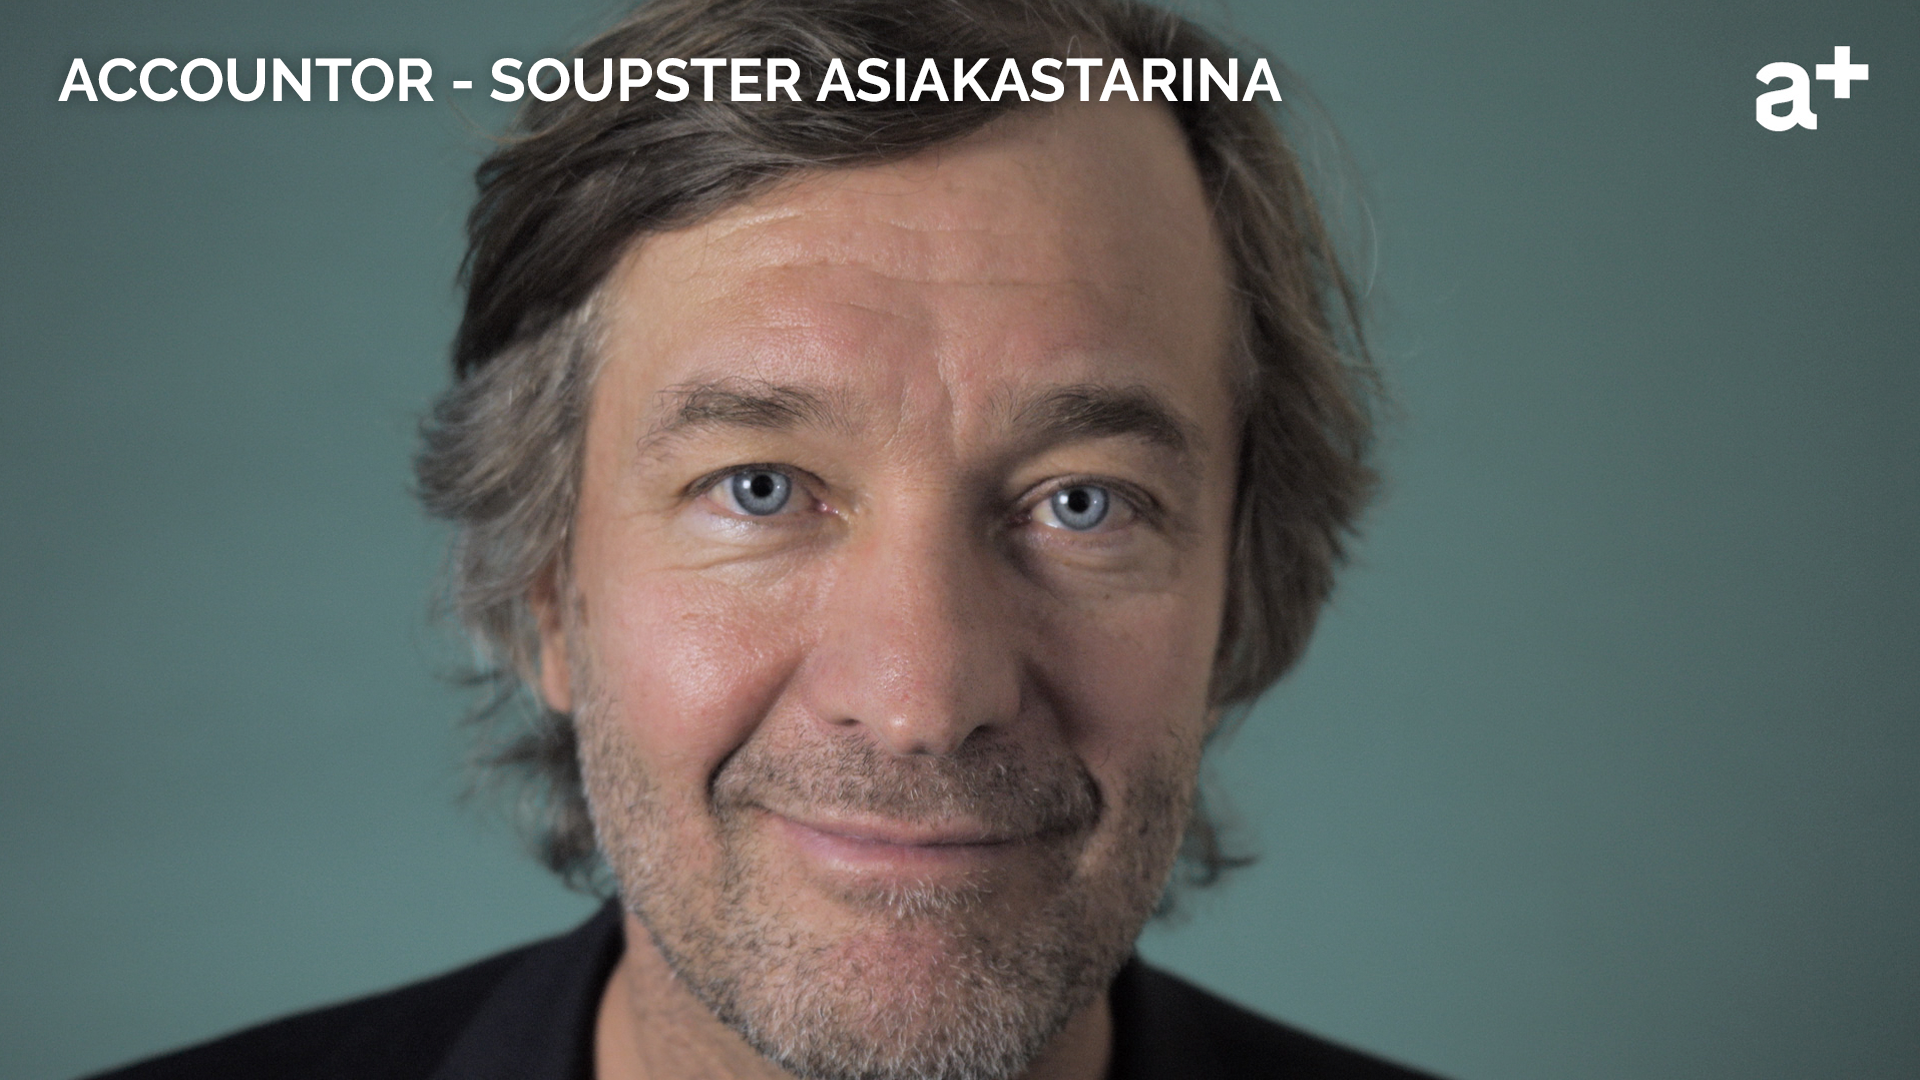 Accountor - Soupster Asiakastarina